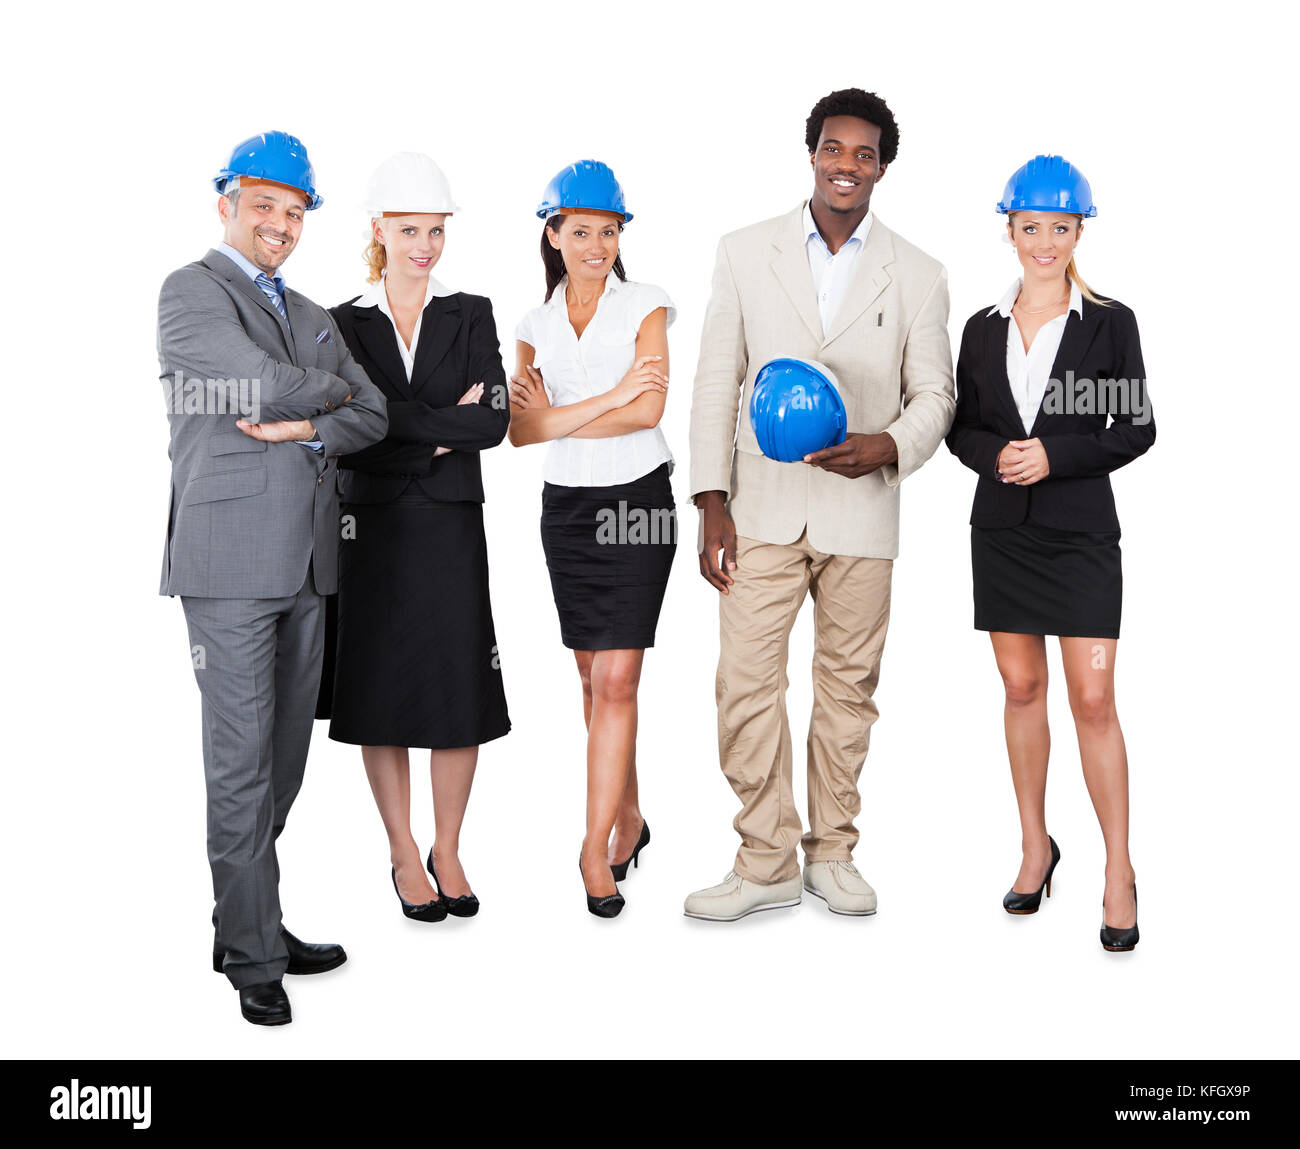 Full length portrait of multiethnic architects with hardhats standing against white background Stock Photo